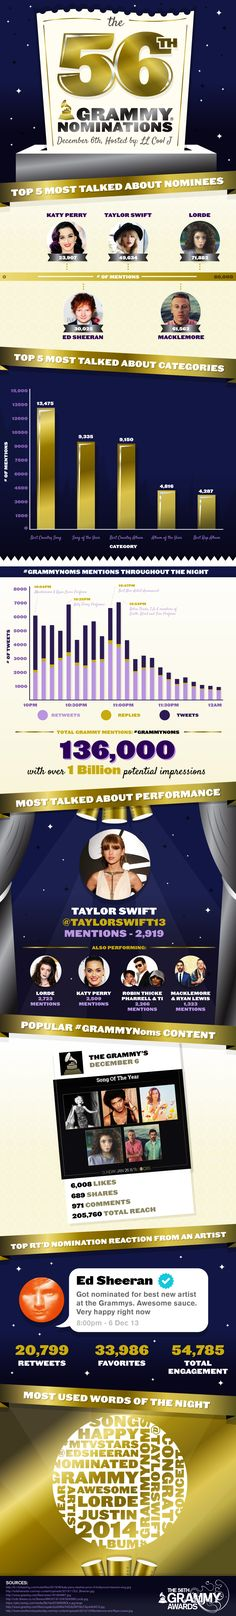 56th GRAMMY Nominations  #Infographic #SocialMedia #Celebrities #Awards